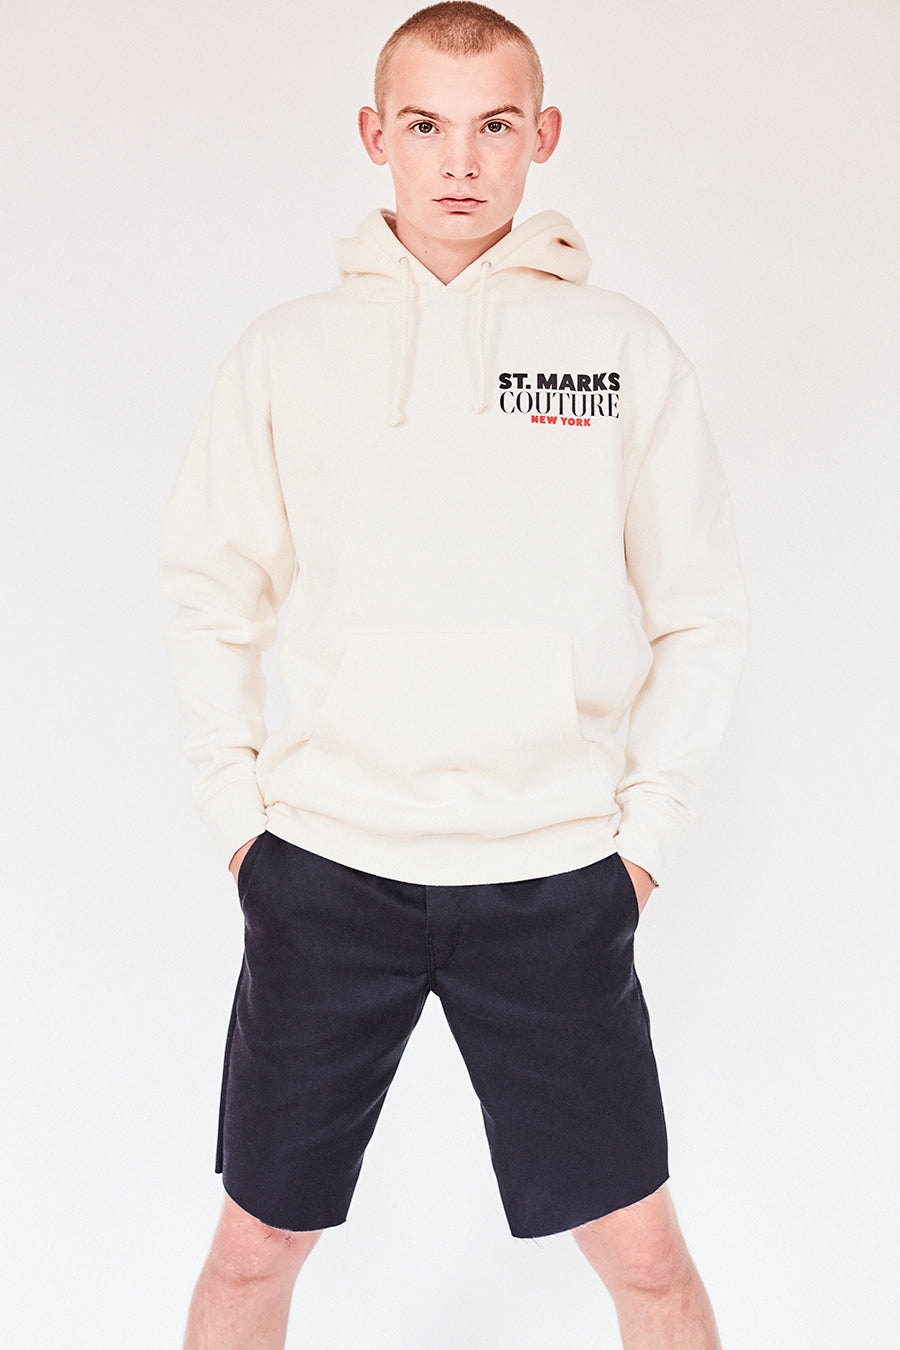 Brand New from New York City: Stmarksnewyork.com. Shop the St. Marks Couture Guys Bone Hoodie: Featuring St. Marks Couture New York logo on chest and St. Marks guys image on the back. Hand silkscreen printed in New York with love.